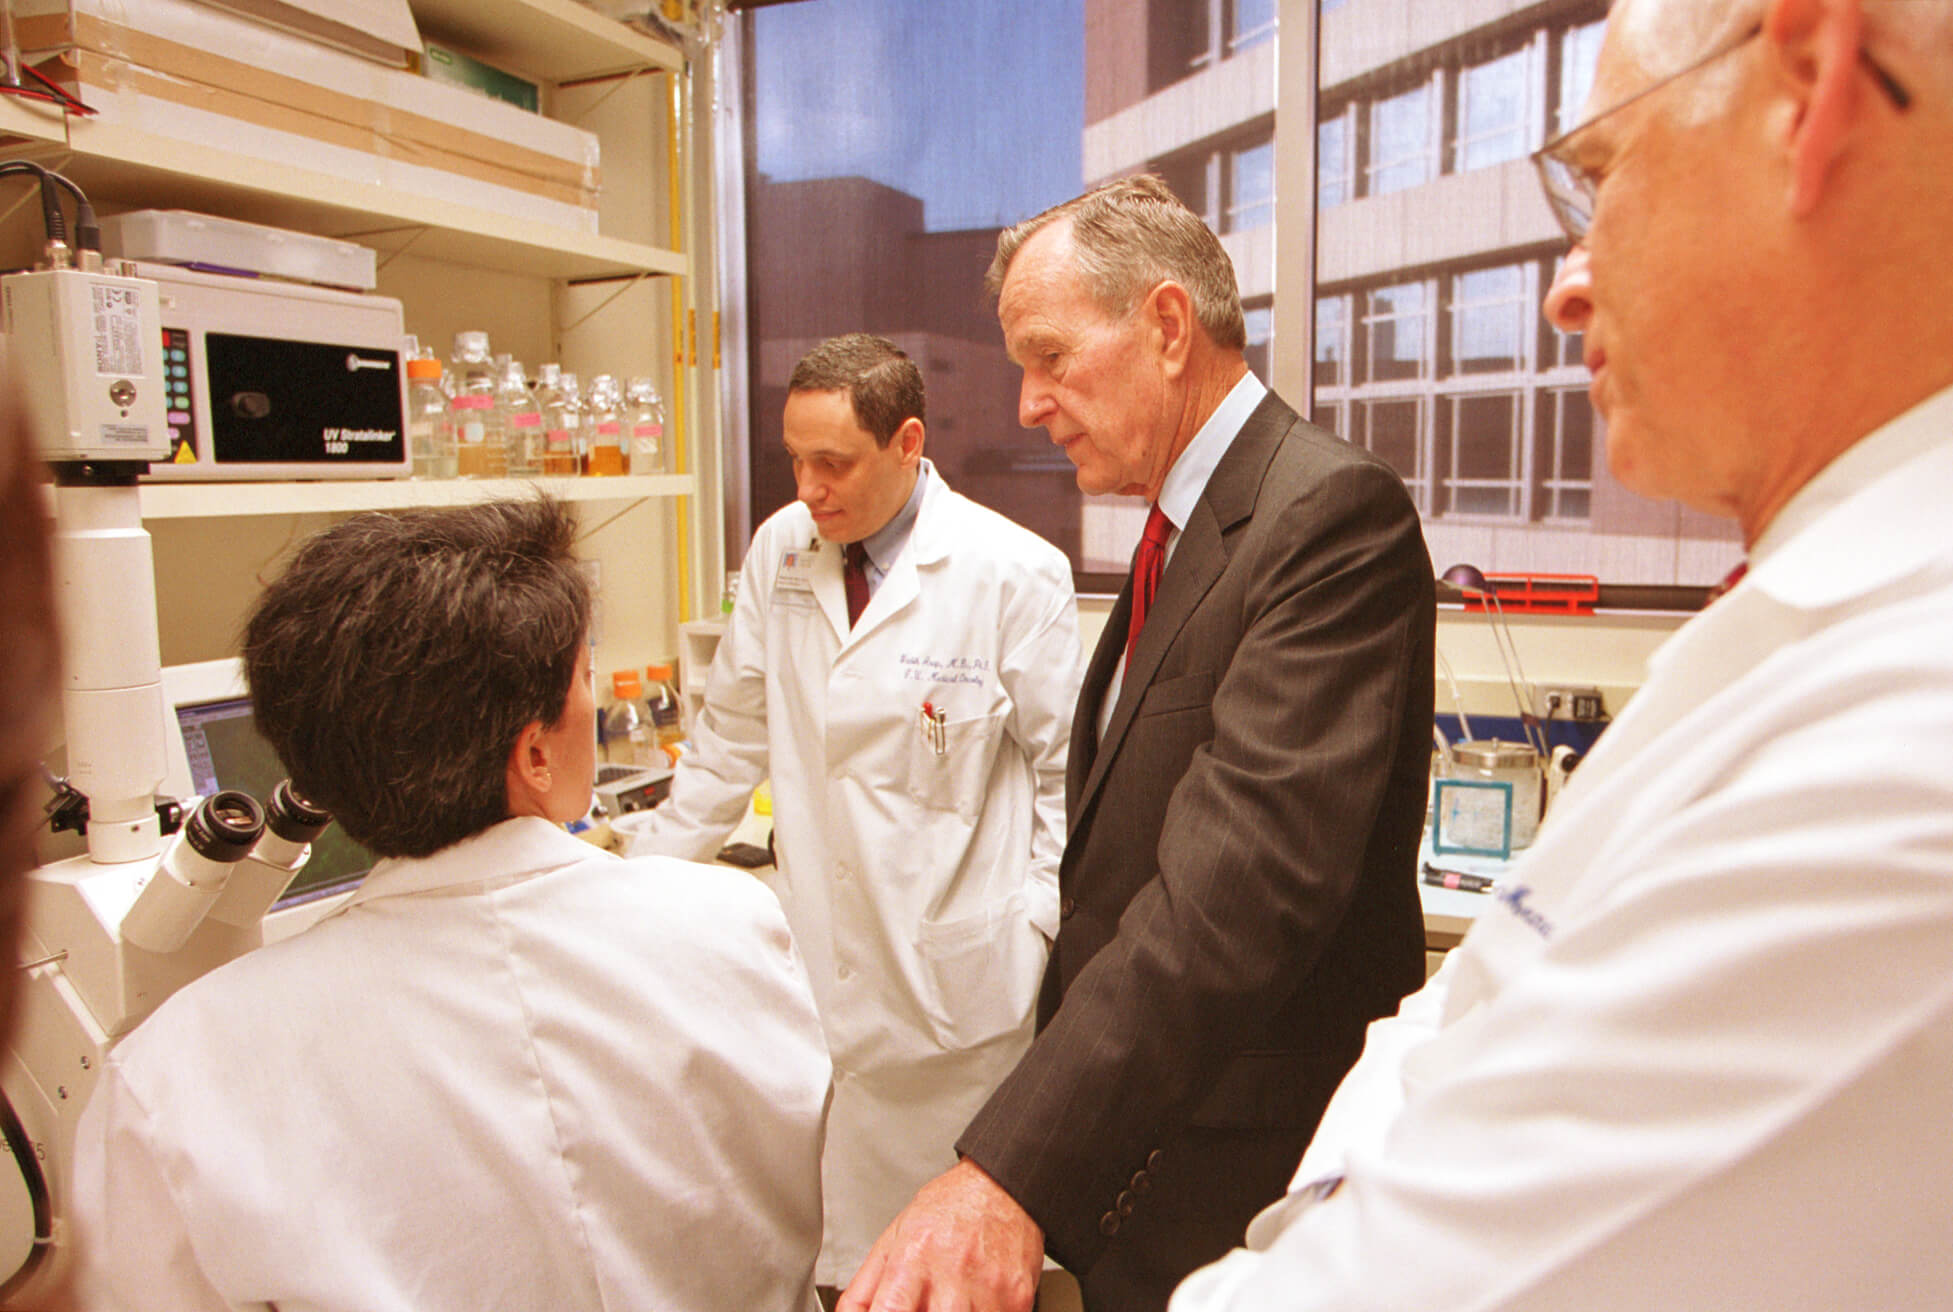 Former President George Bush tours the University of Texas MD Anderson Cancer Center in 2001 and talks with researchers about tumors in test mice. (Courtesy of MD Anderson)